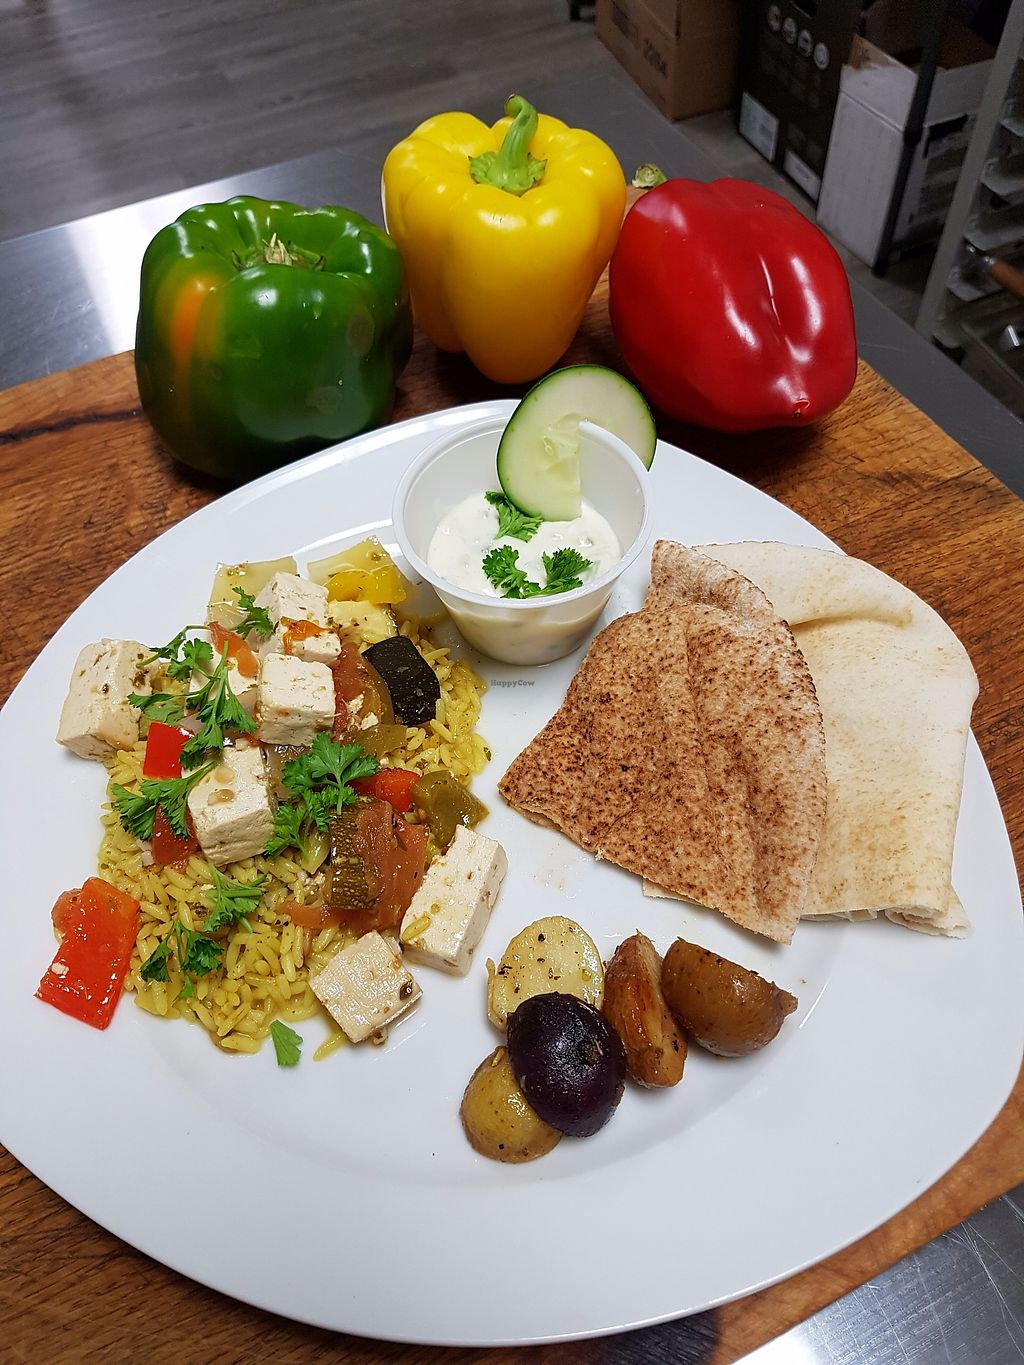 "Photo of Mon Petit Coin Vegane MB  by <a href=""/members/profile/ManonBeaudry"">ManonBeaudry</a> <br/>Tofu souvlaki sur riz au curry,